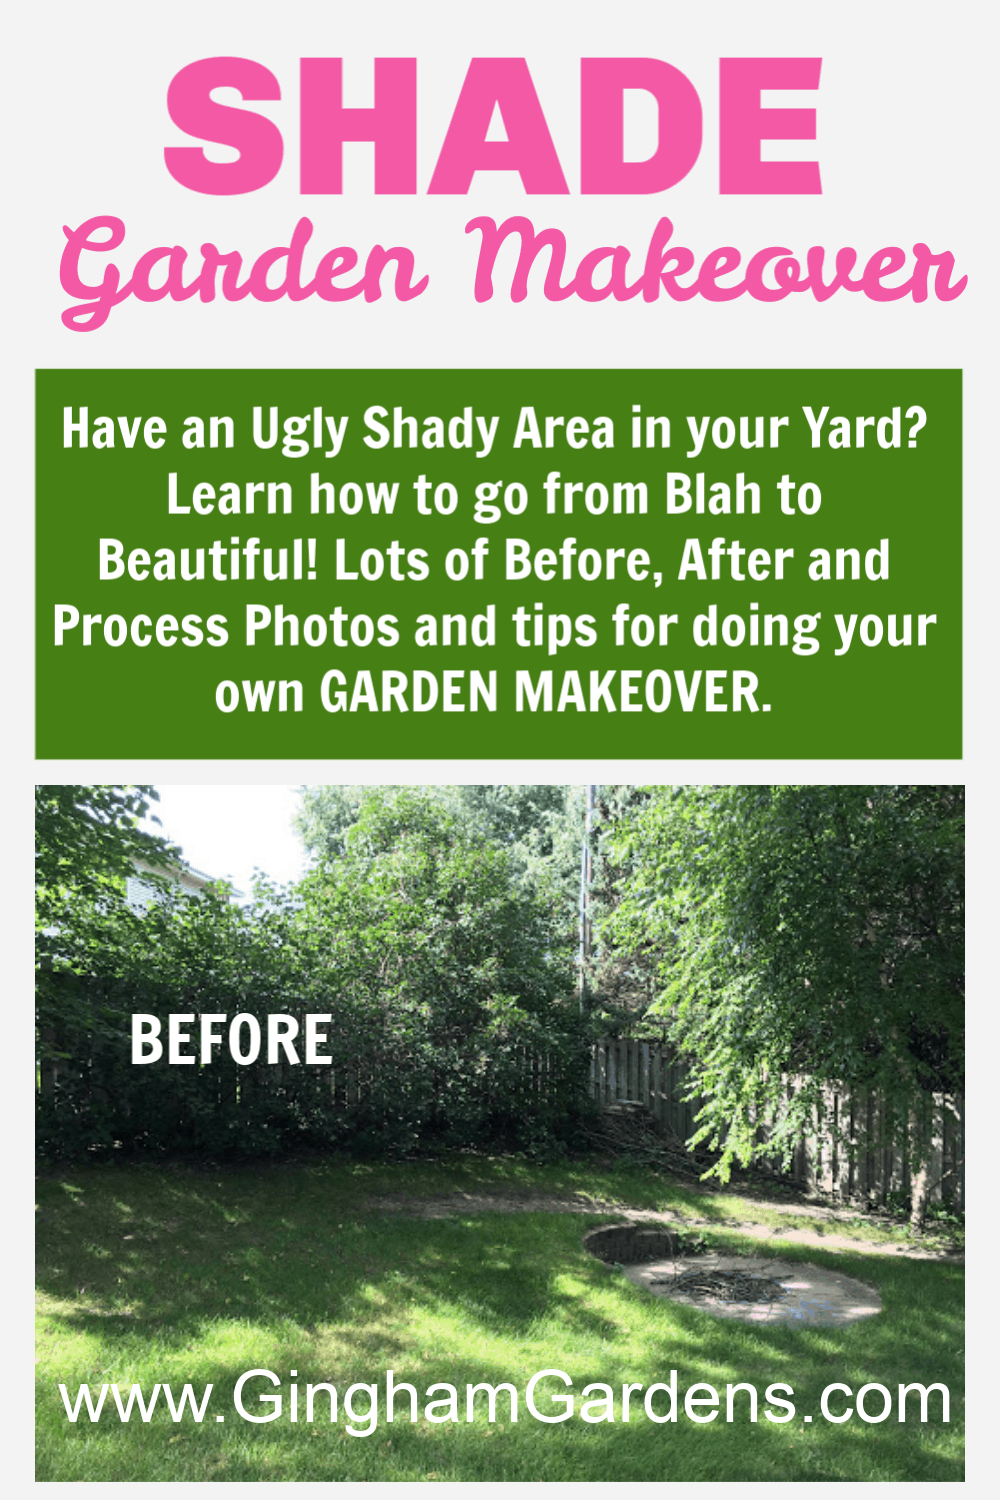 Image of Shady Yard with Text Overlay - Shade Garden Makeover